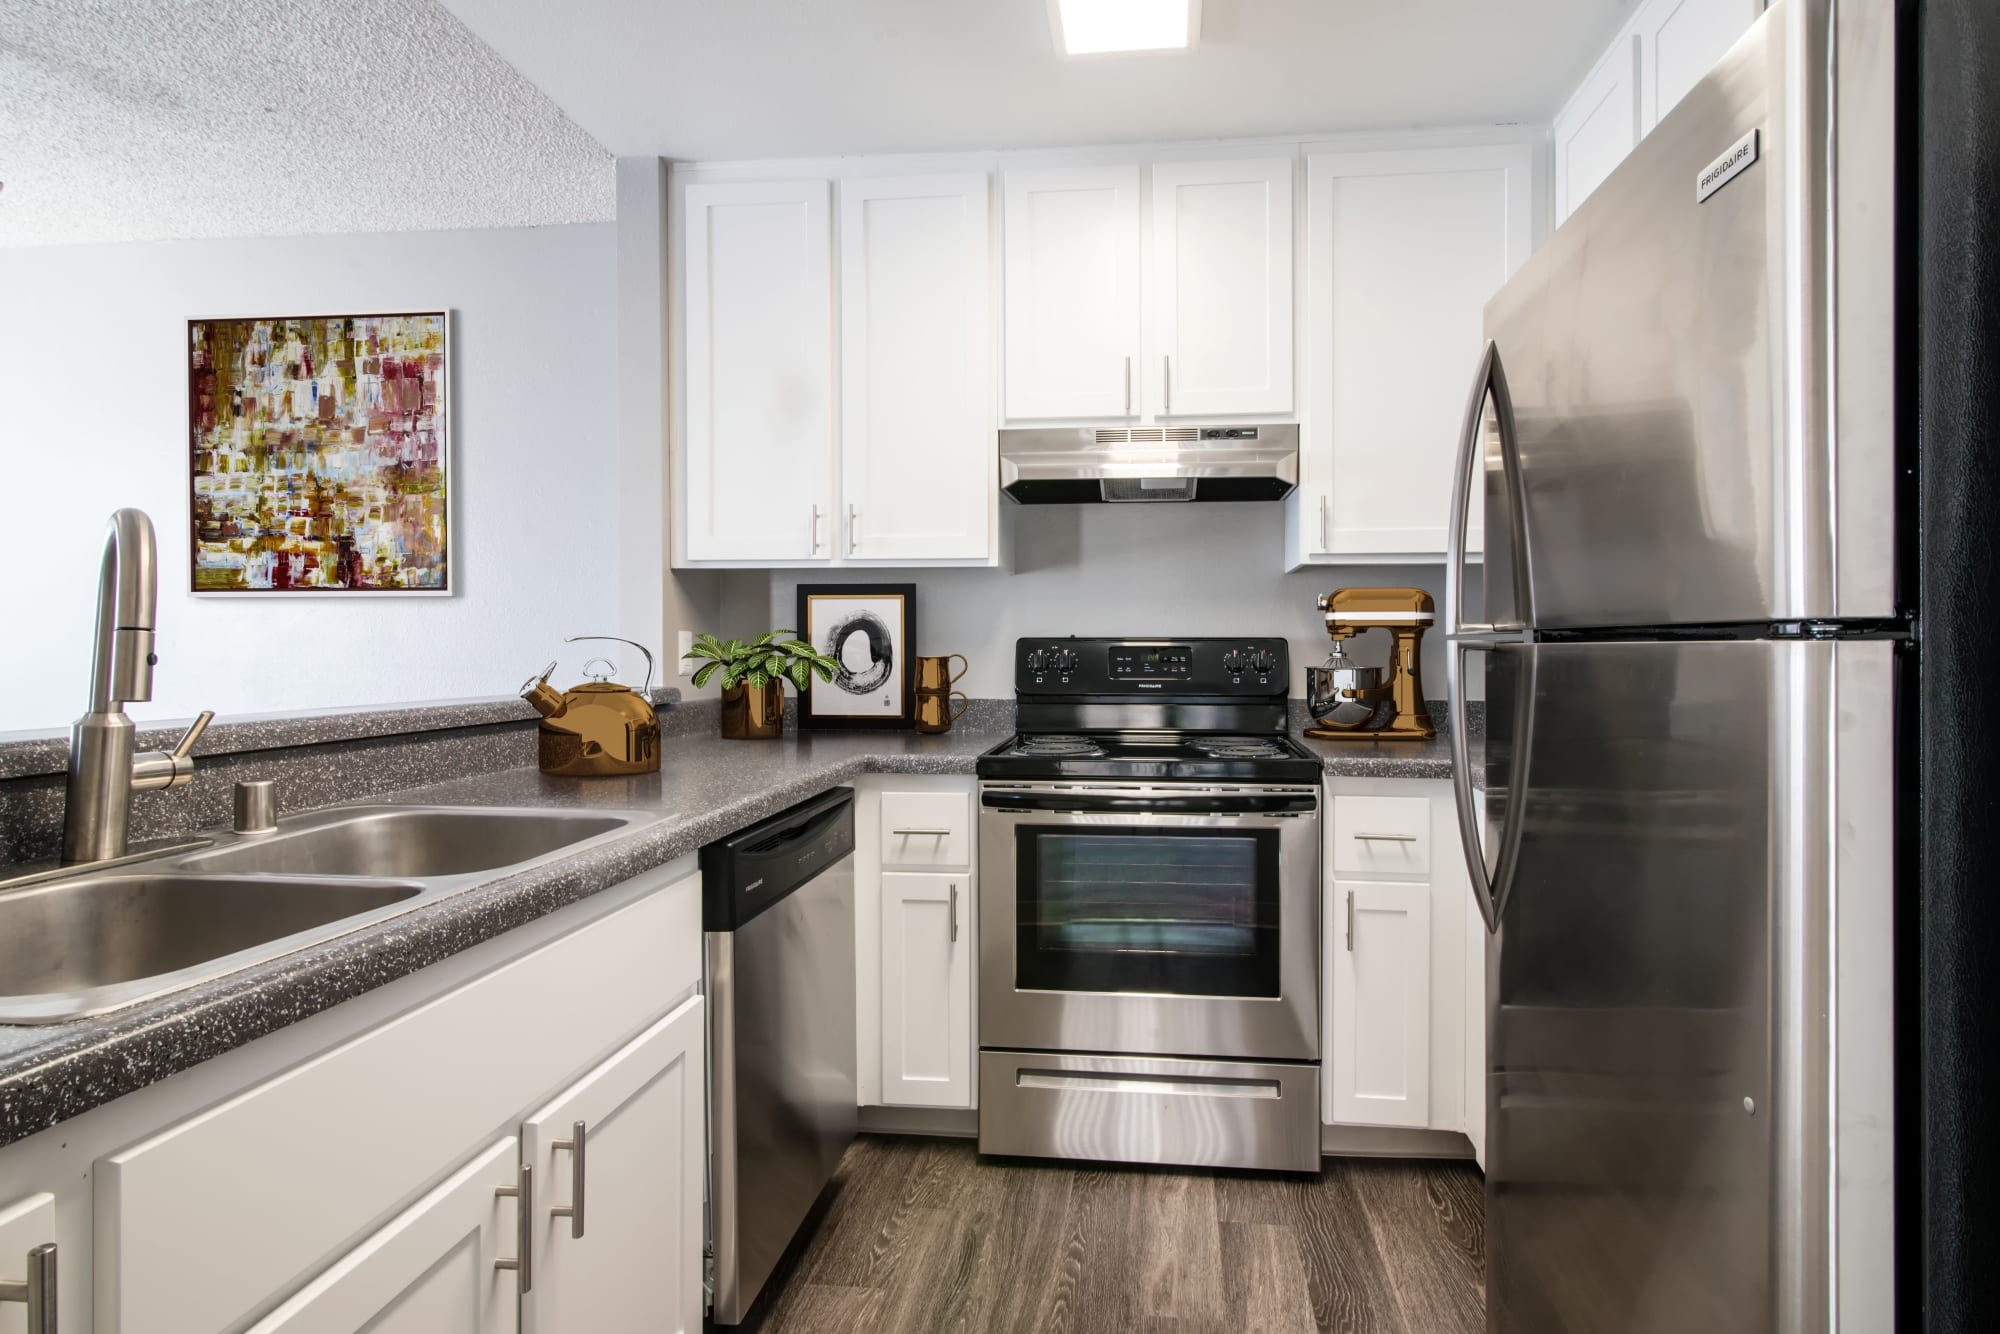 Renovated kitchen with white cabinets and stainless steel appliances at Lakeview Village Apartments in Spring Valley, California